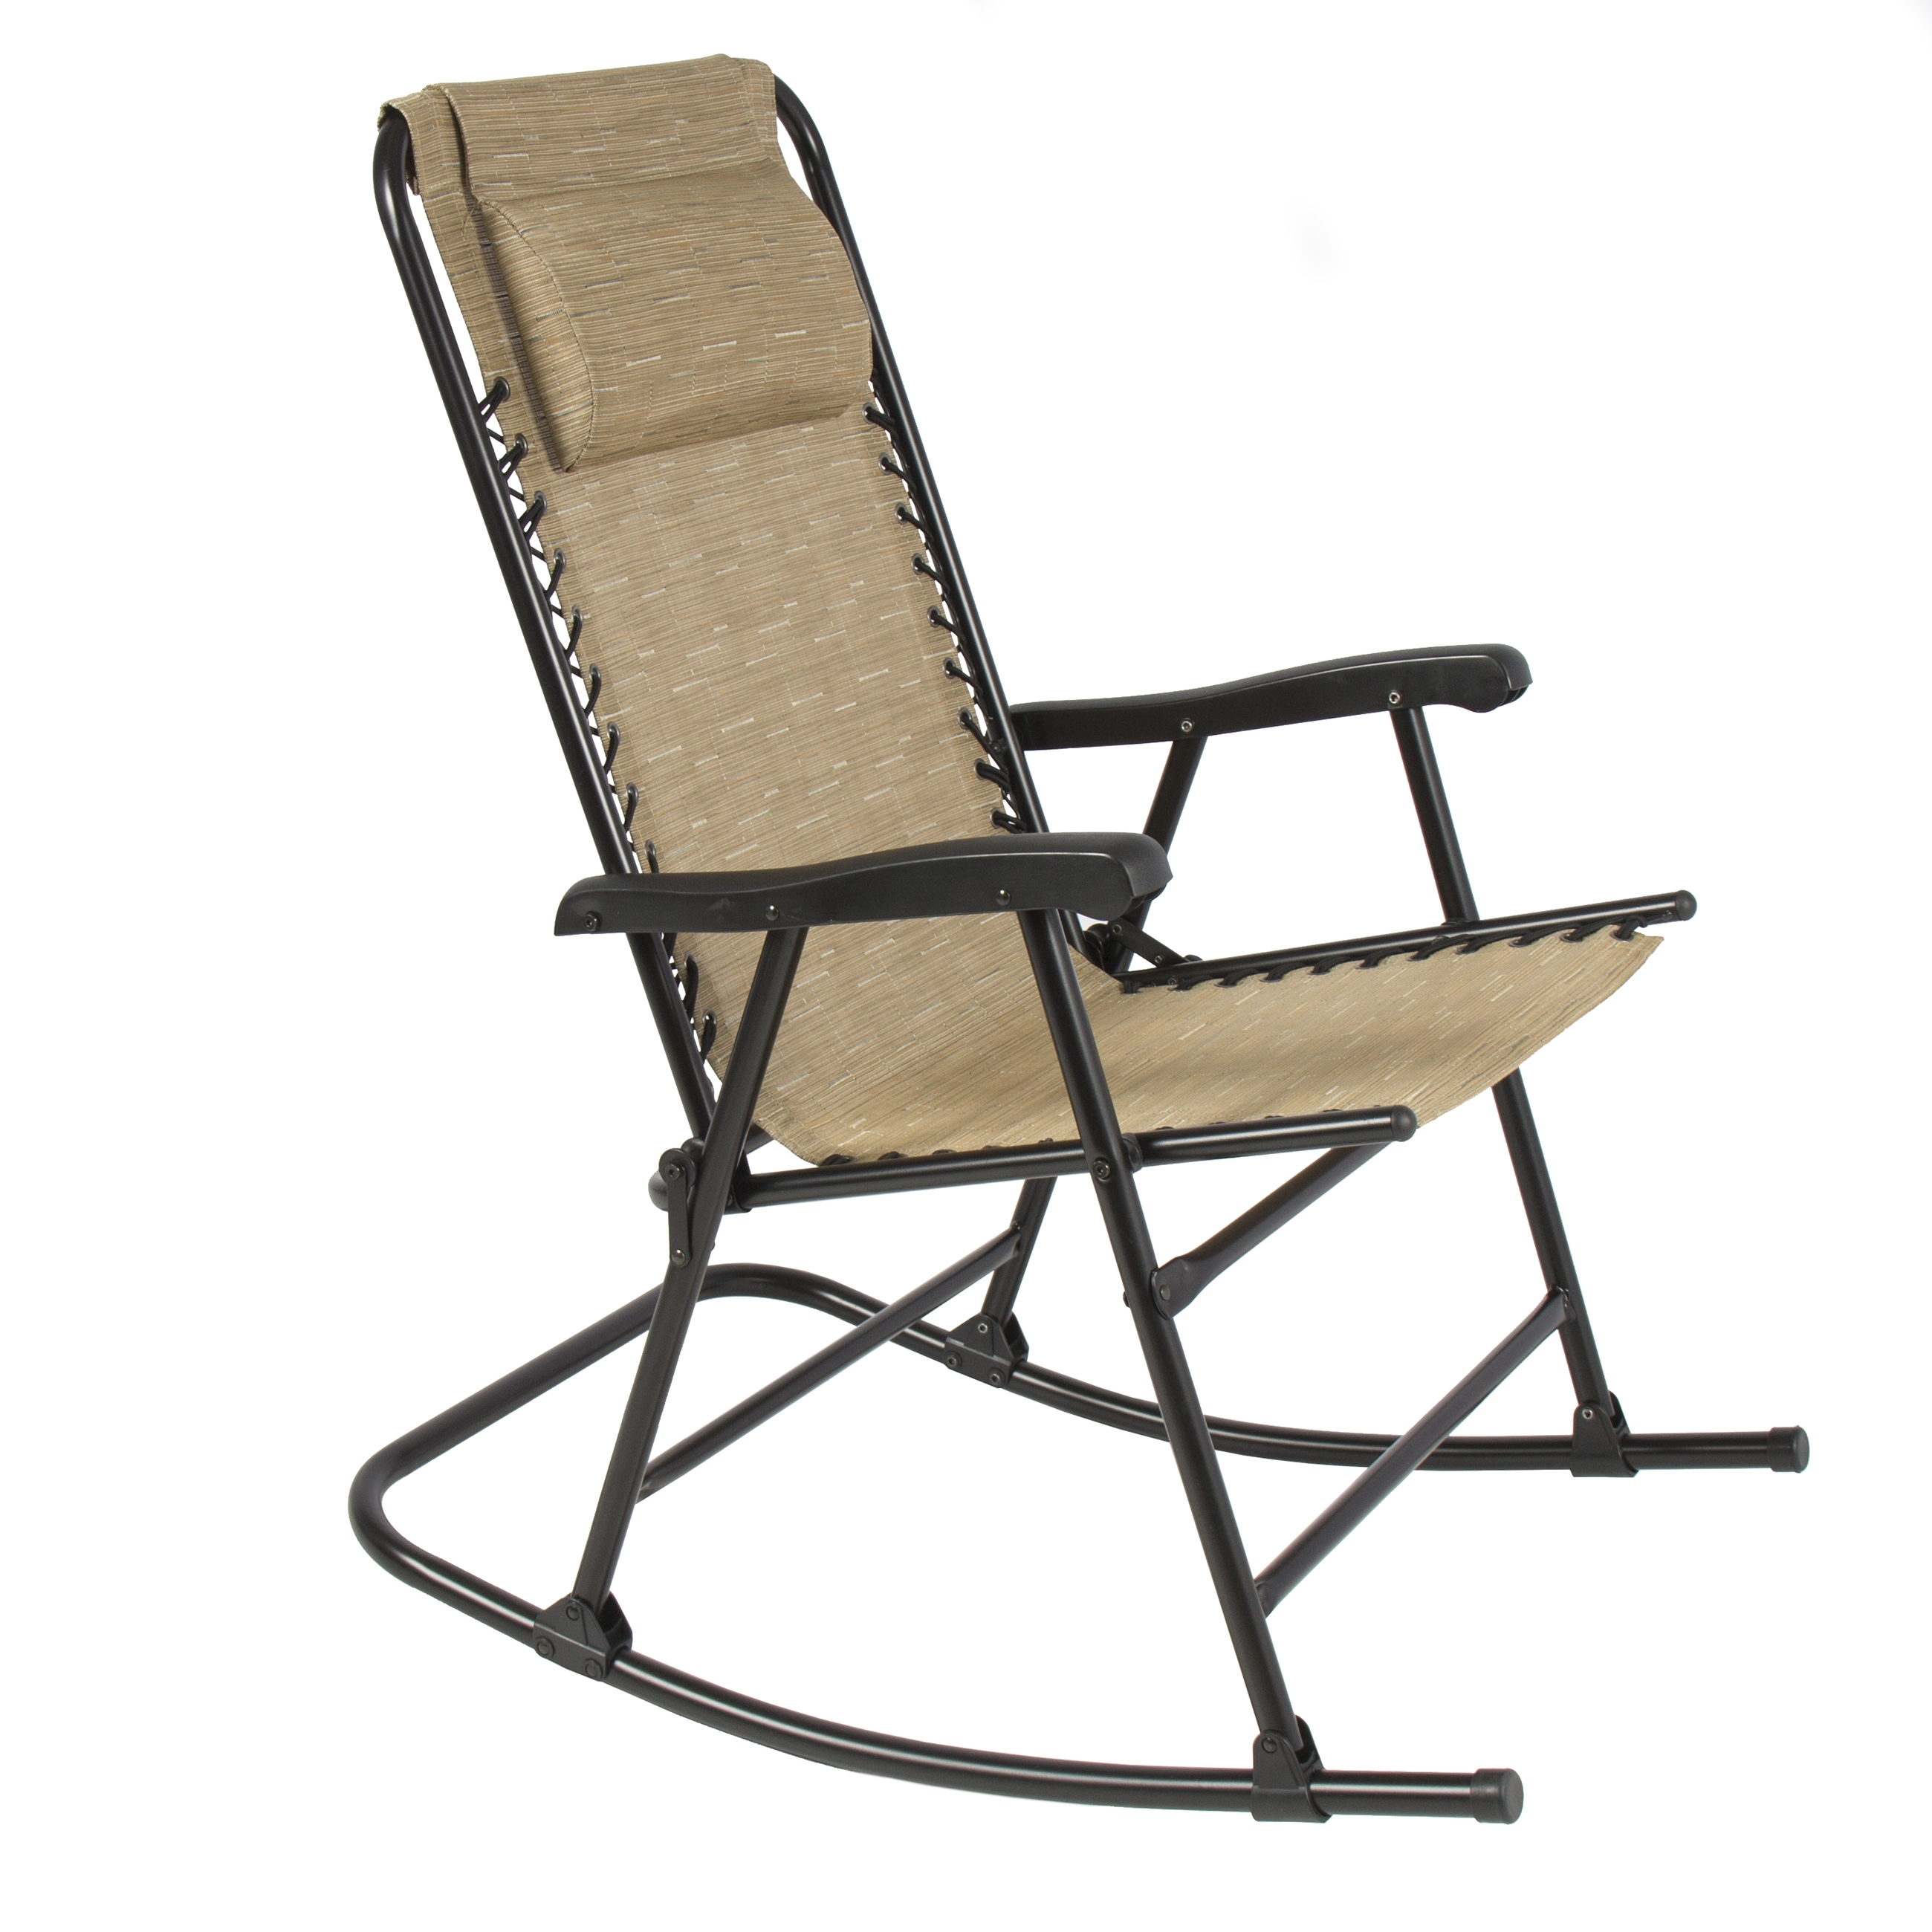 Walmart Rocking Chairs Throughout Newest Folding Rocking Chair Foldable Rocker Outdoor Patio Furniture Beige (View 12 of 15)